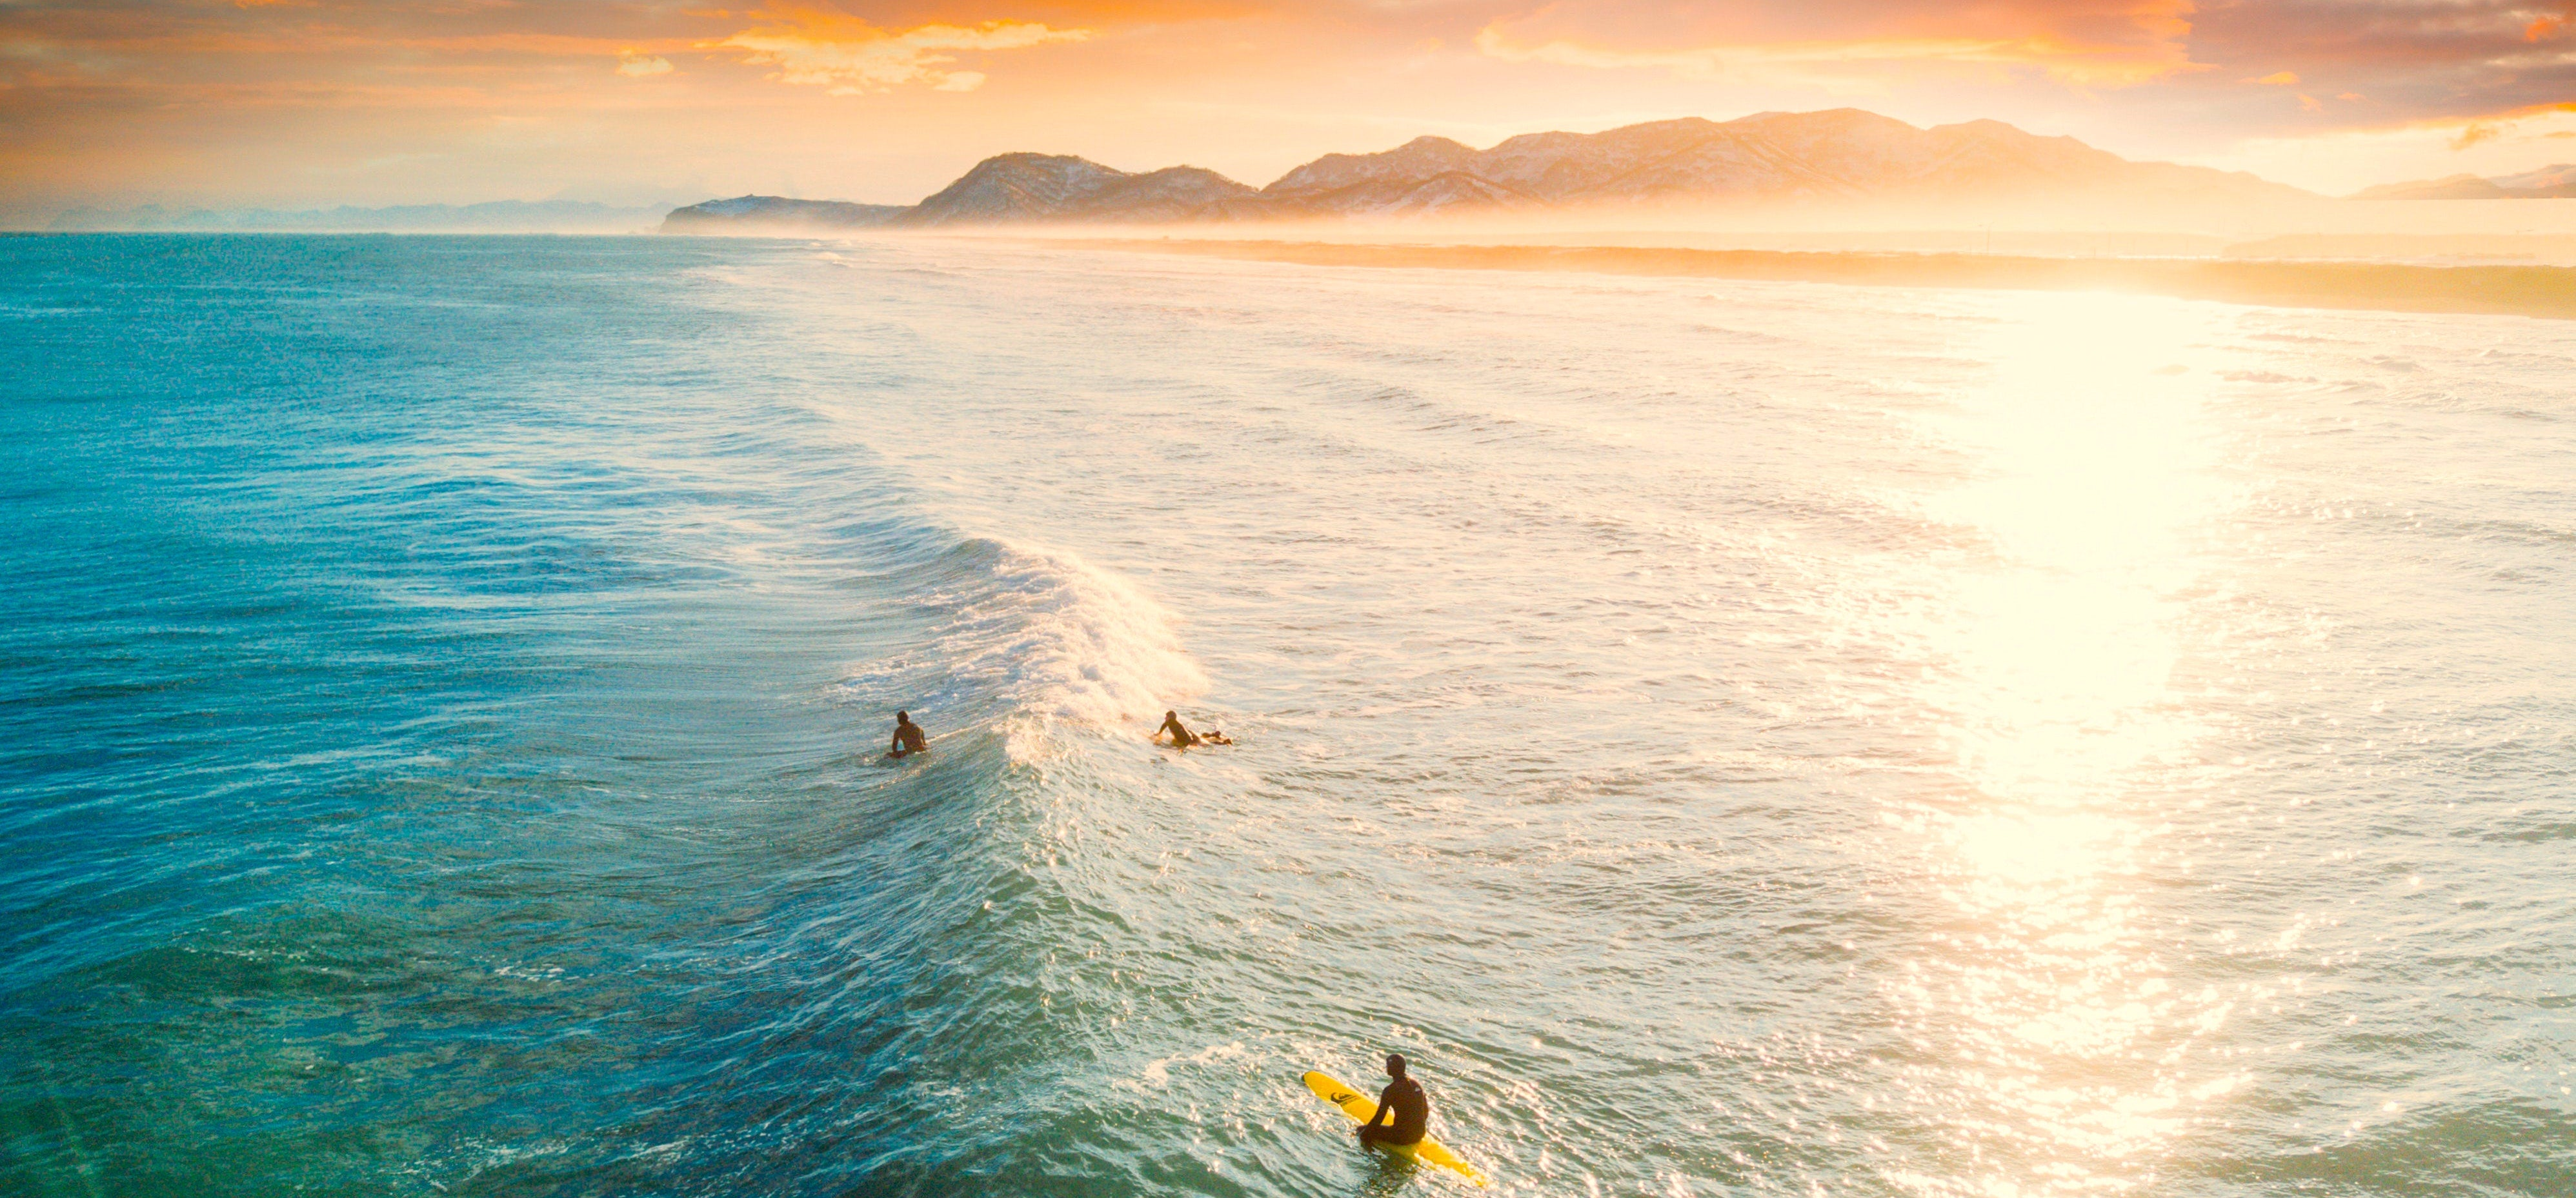 Surflogic Australia Team Page Showing Surfers in the Line Up at Sunset